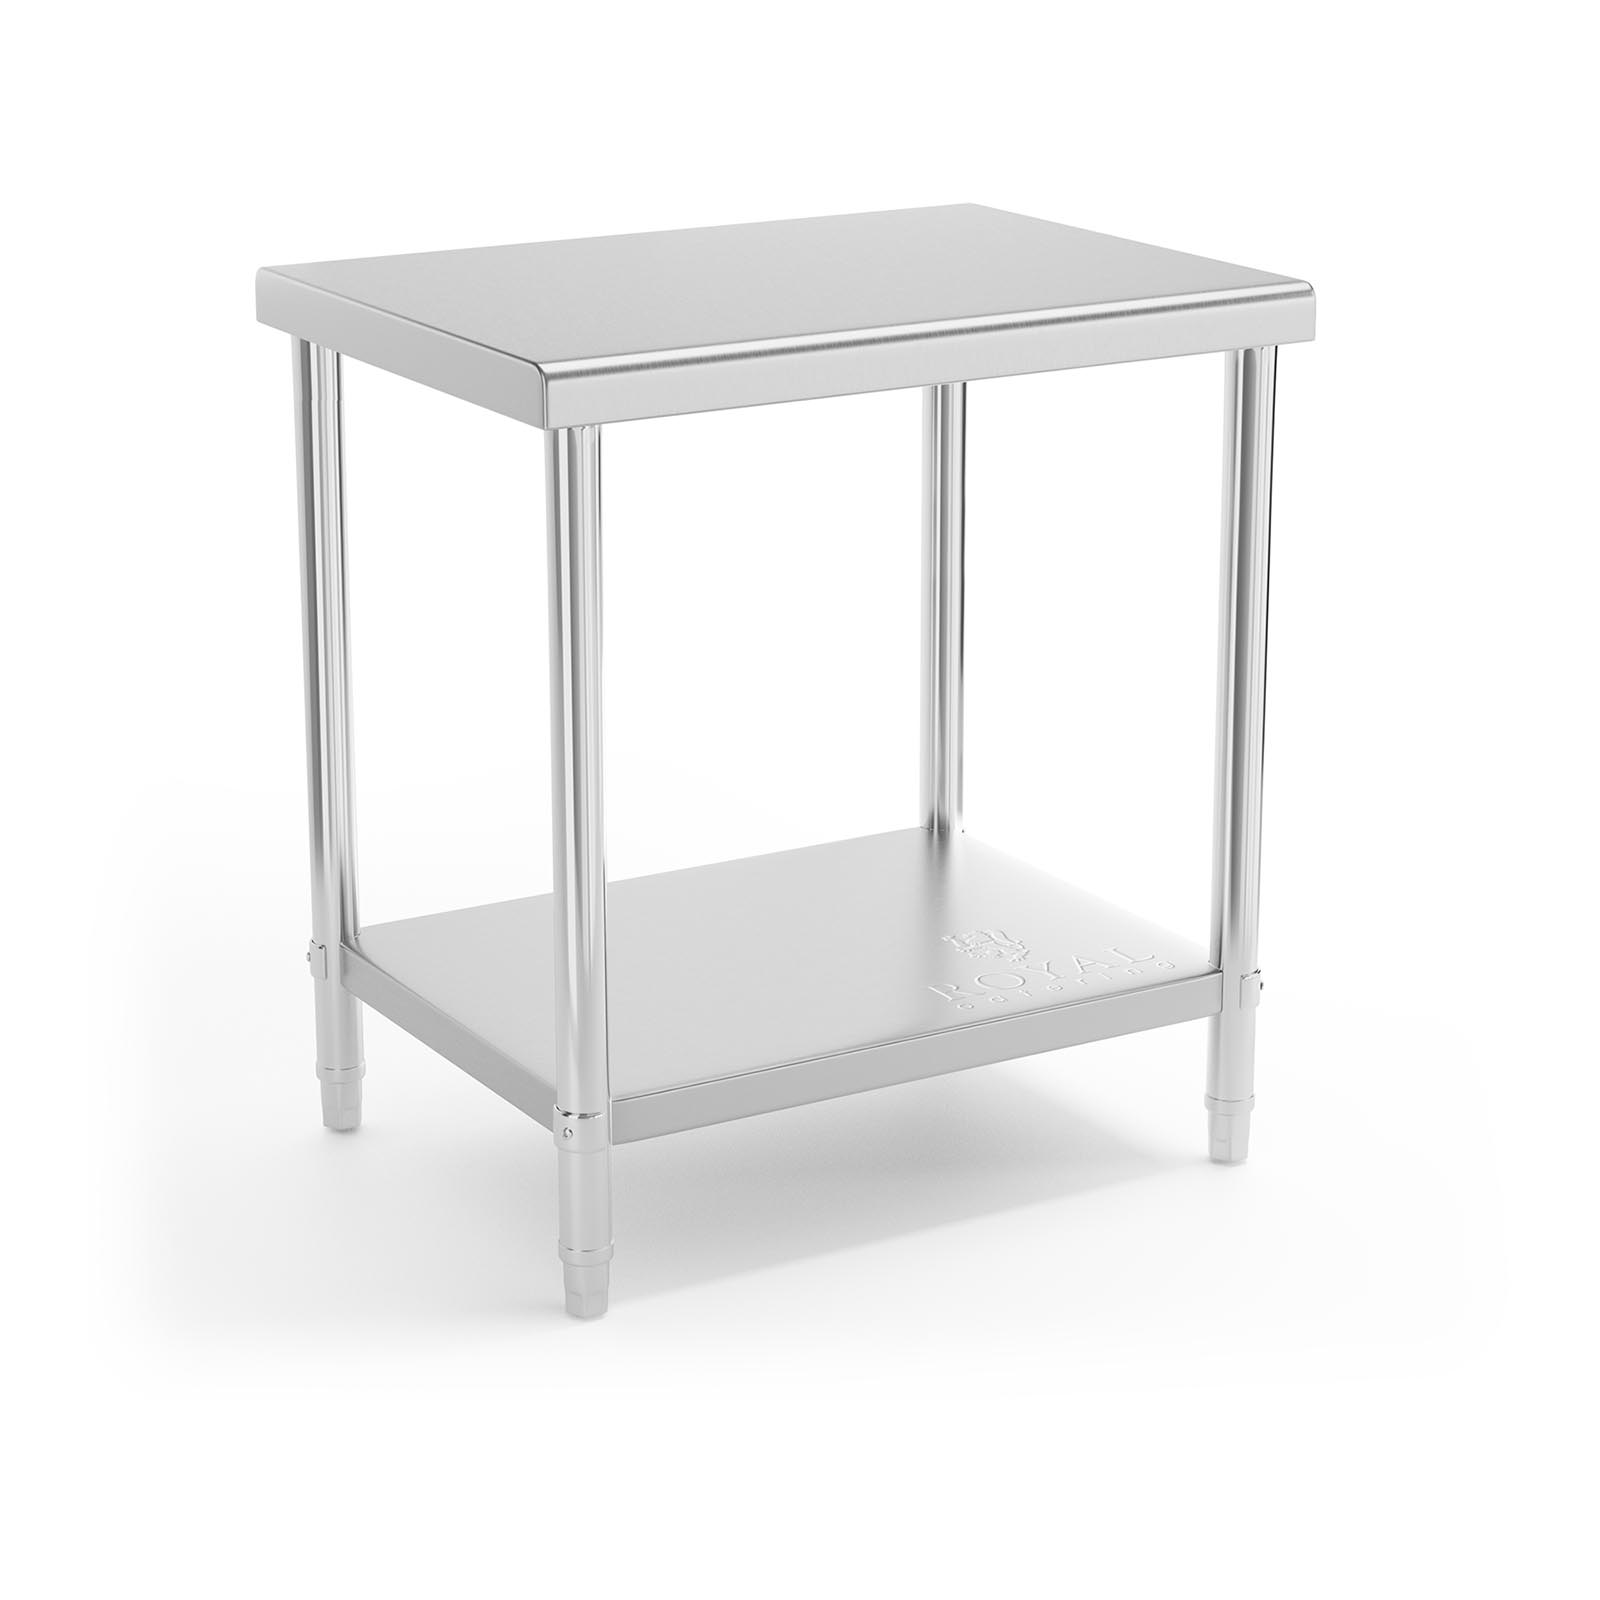 STAINLESS STEEL TOPPED WORK BENCH TABLE 2 SHELVES 11 CM 120 x 60 CM 110 KG LOAD